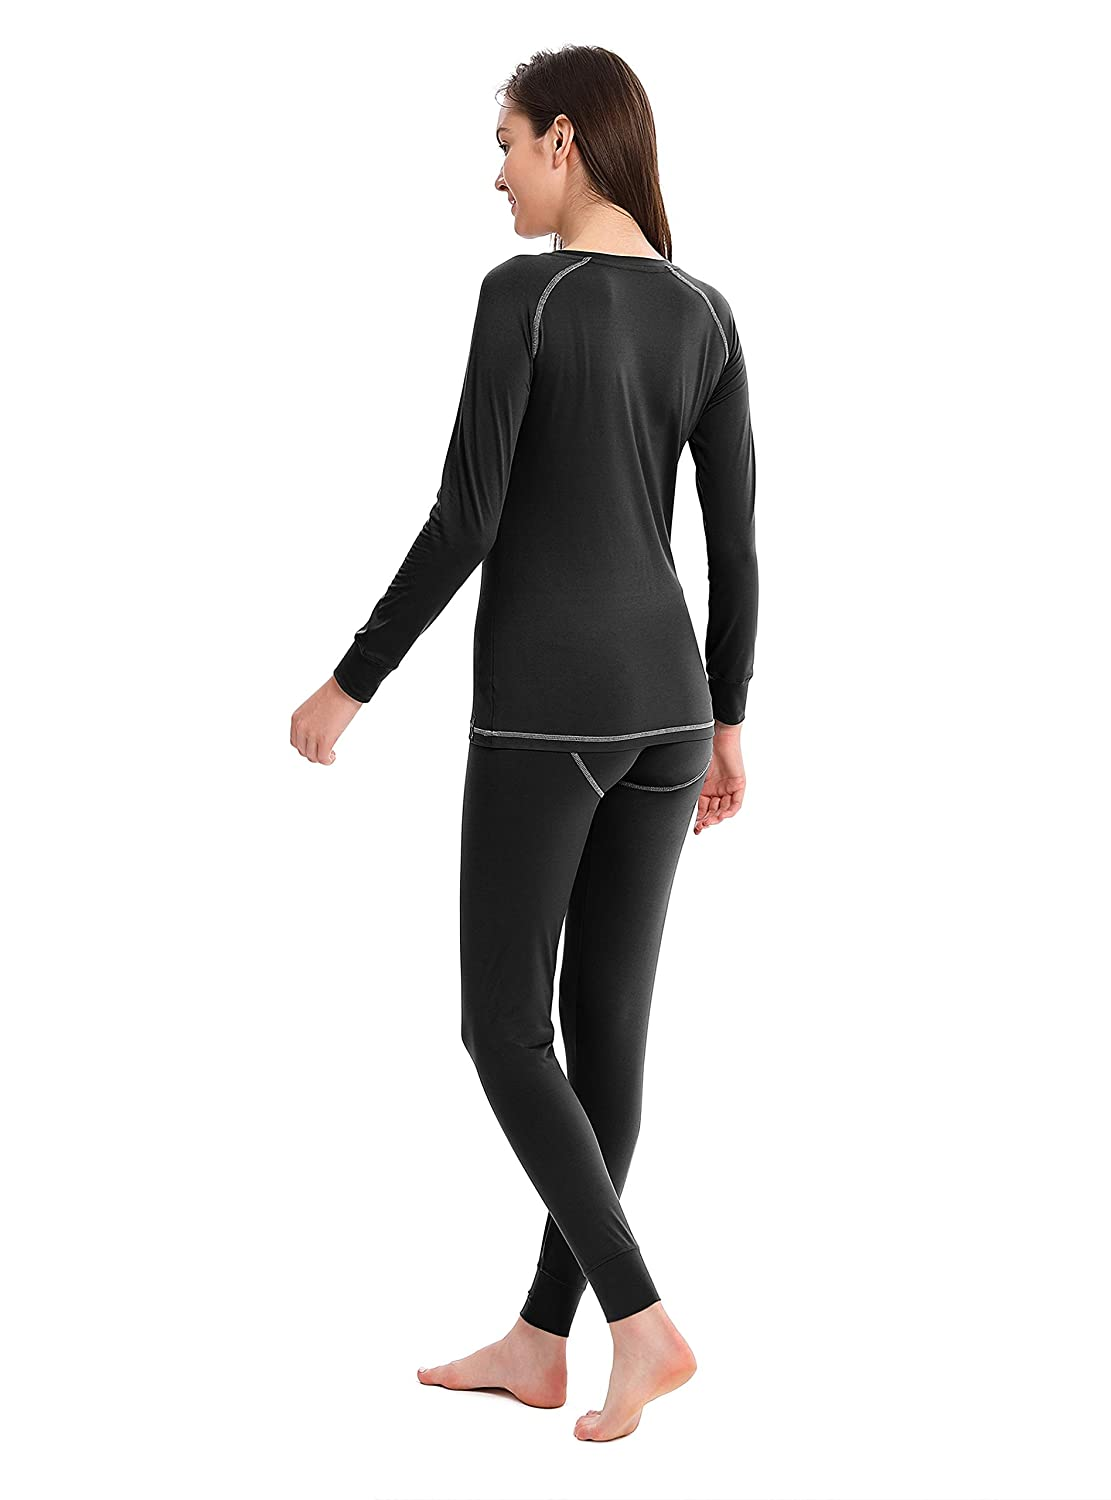 Femofit Compression Performance Thermal Underwear for Women Long John Set Base Layer S~XL